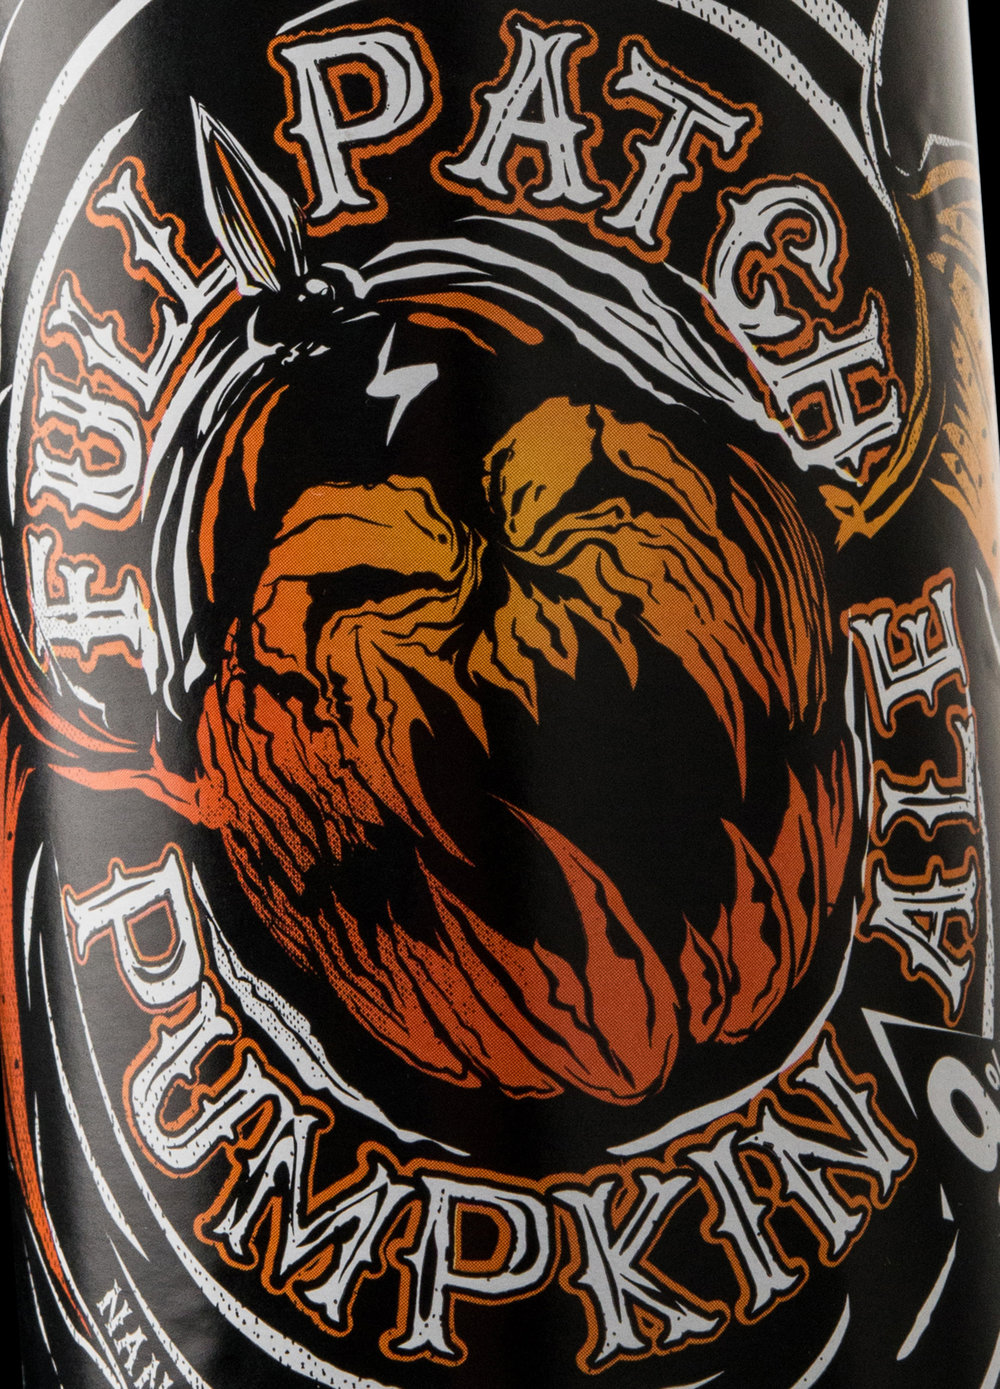 Packaging Design for Longwood Brewery's Full Patch Pumpkin Ale